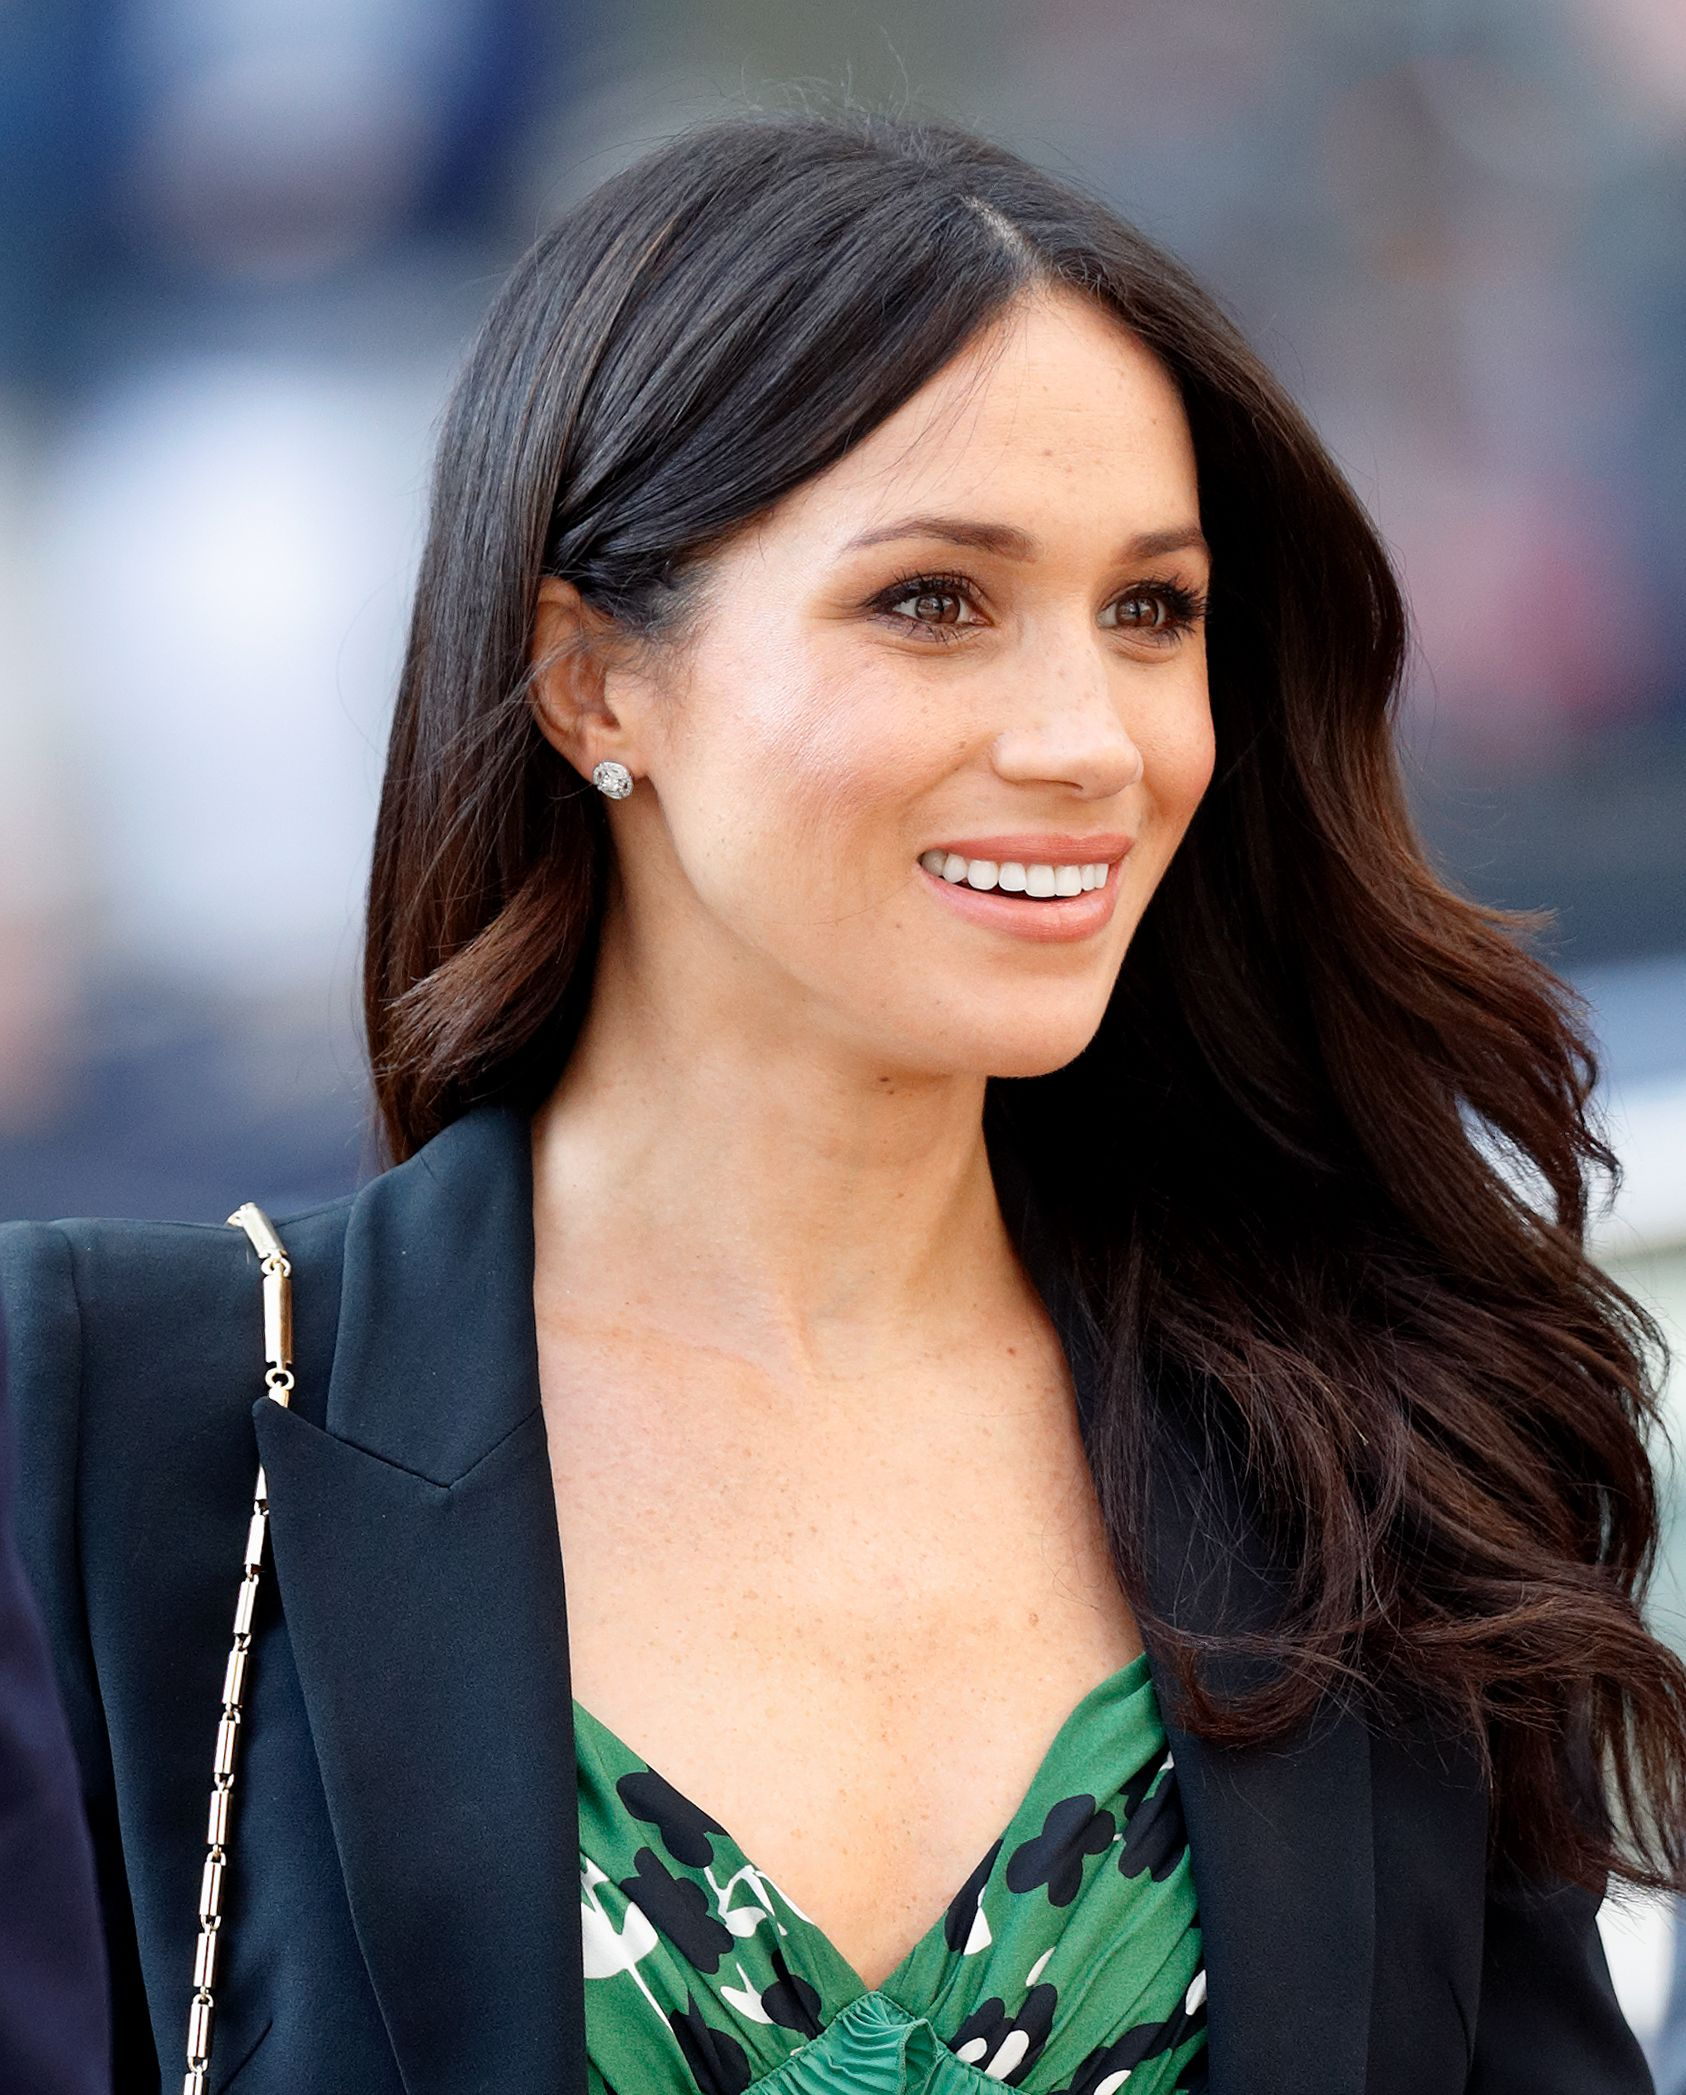 Buckingham Palace 'Bans' Meghan Markle's Jewellery Designer From Using Pictures Of Her On Instagram